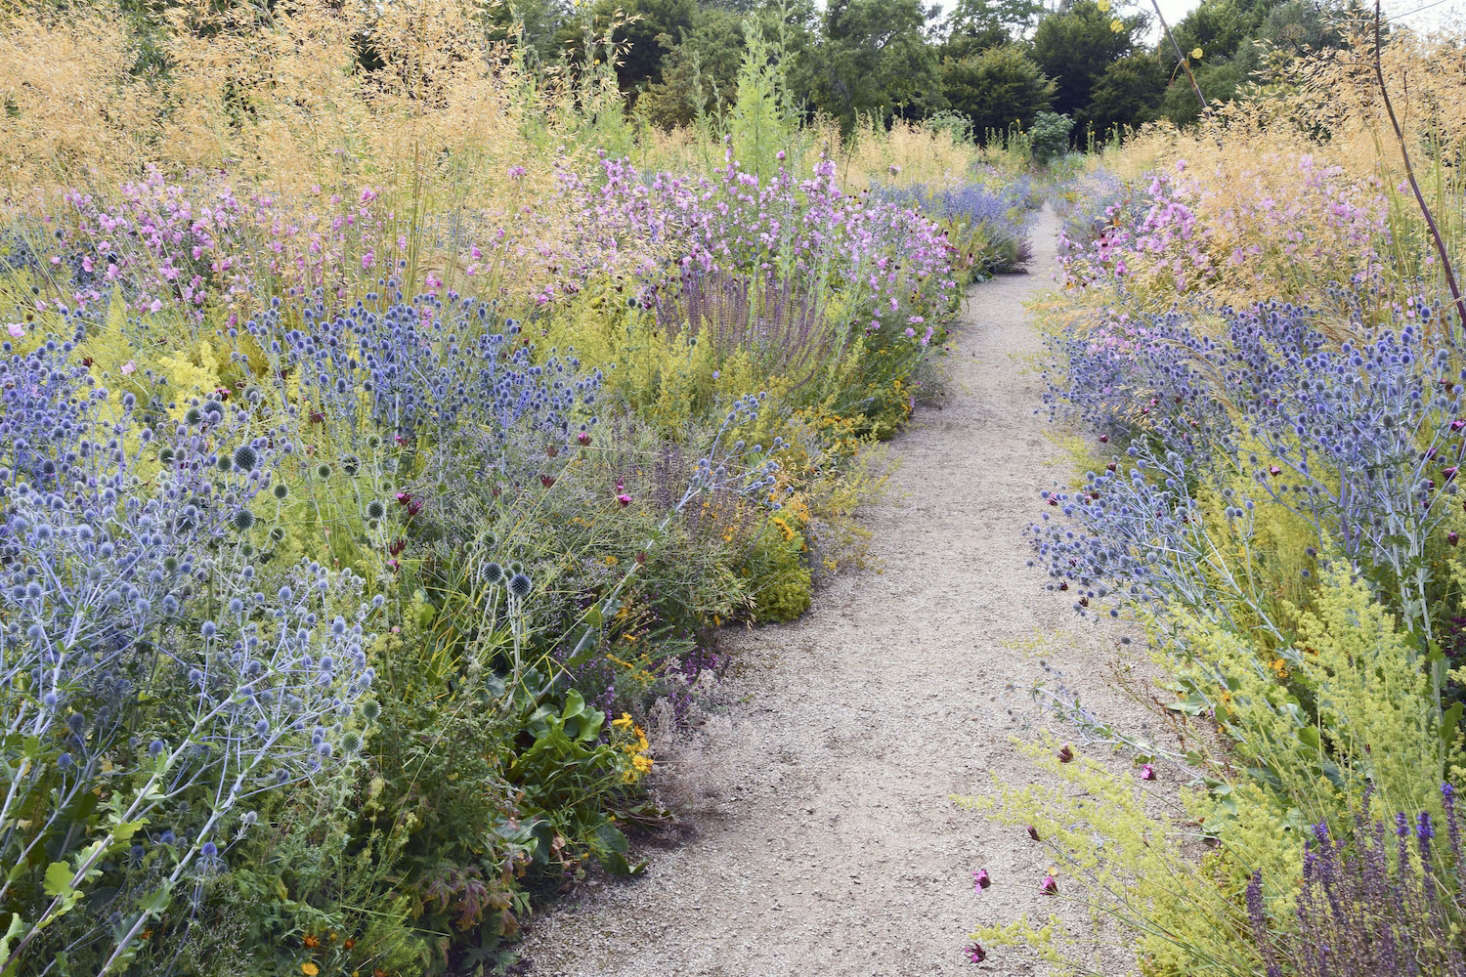 Stipa giganta and wildflowers edge a gravel path in the Merton borders at University of Oxford Botanic Garden.